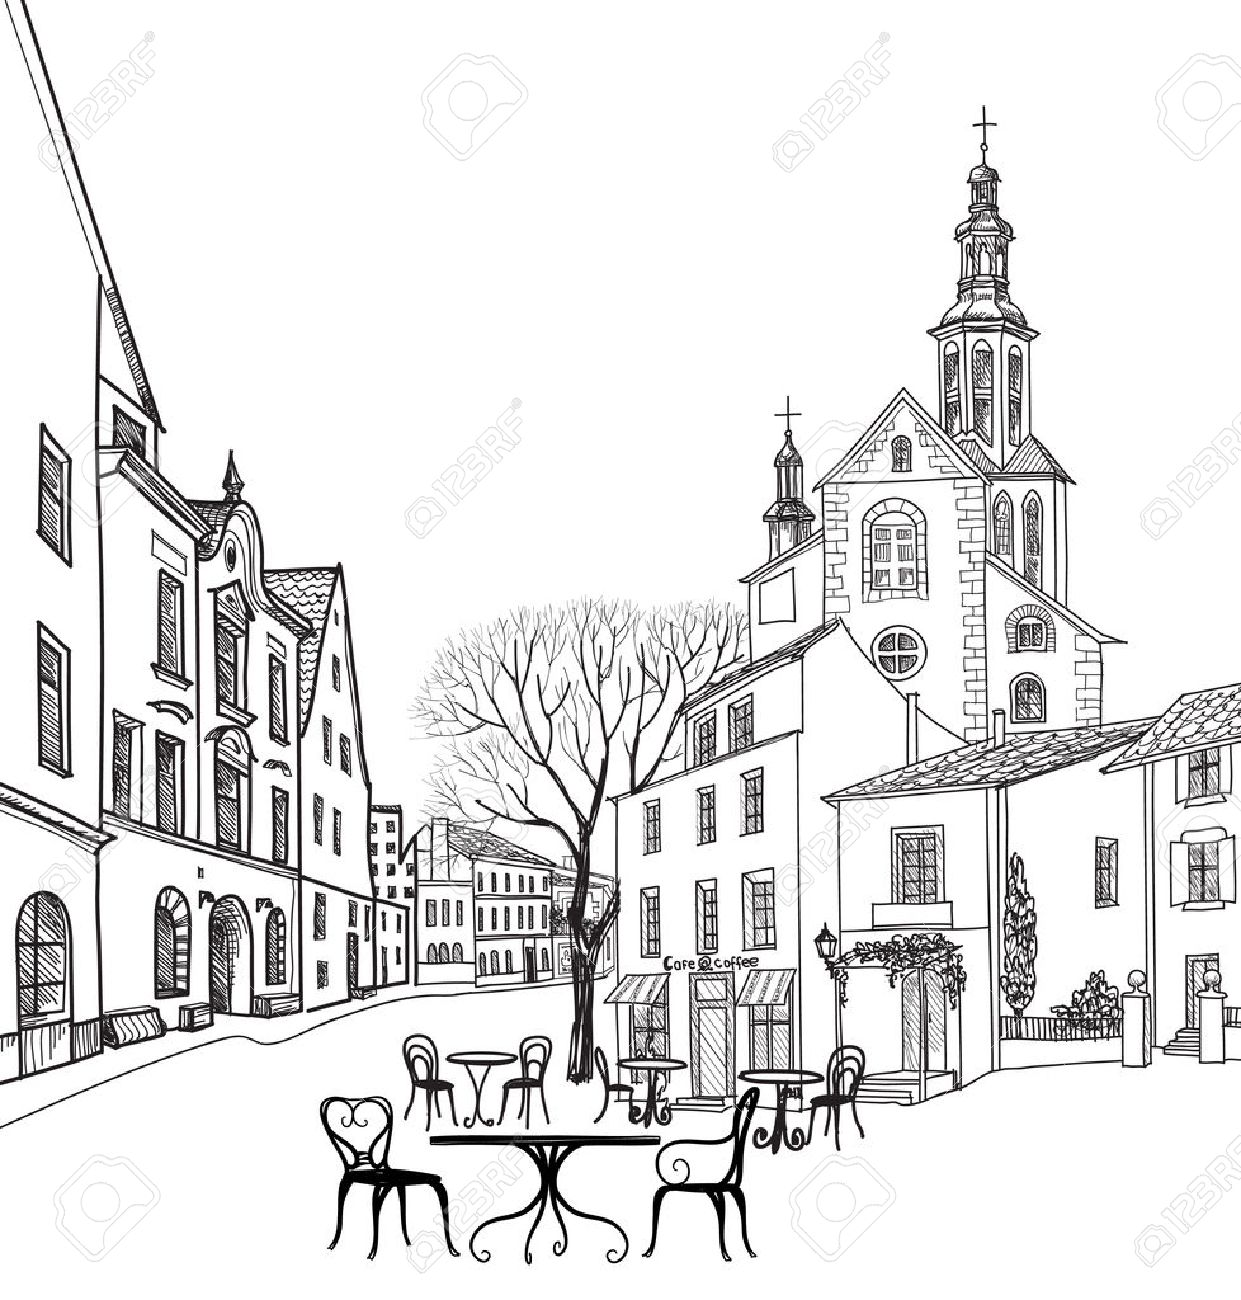 Street cafe in old city. Cityscape - houses, buildings and tree on alleyway. Old city view. Medieval european castle landscape. Pencil drawn vector sketch Stock Vector - 46921940